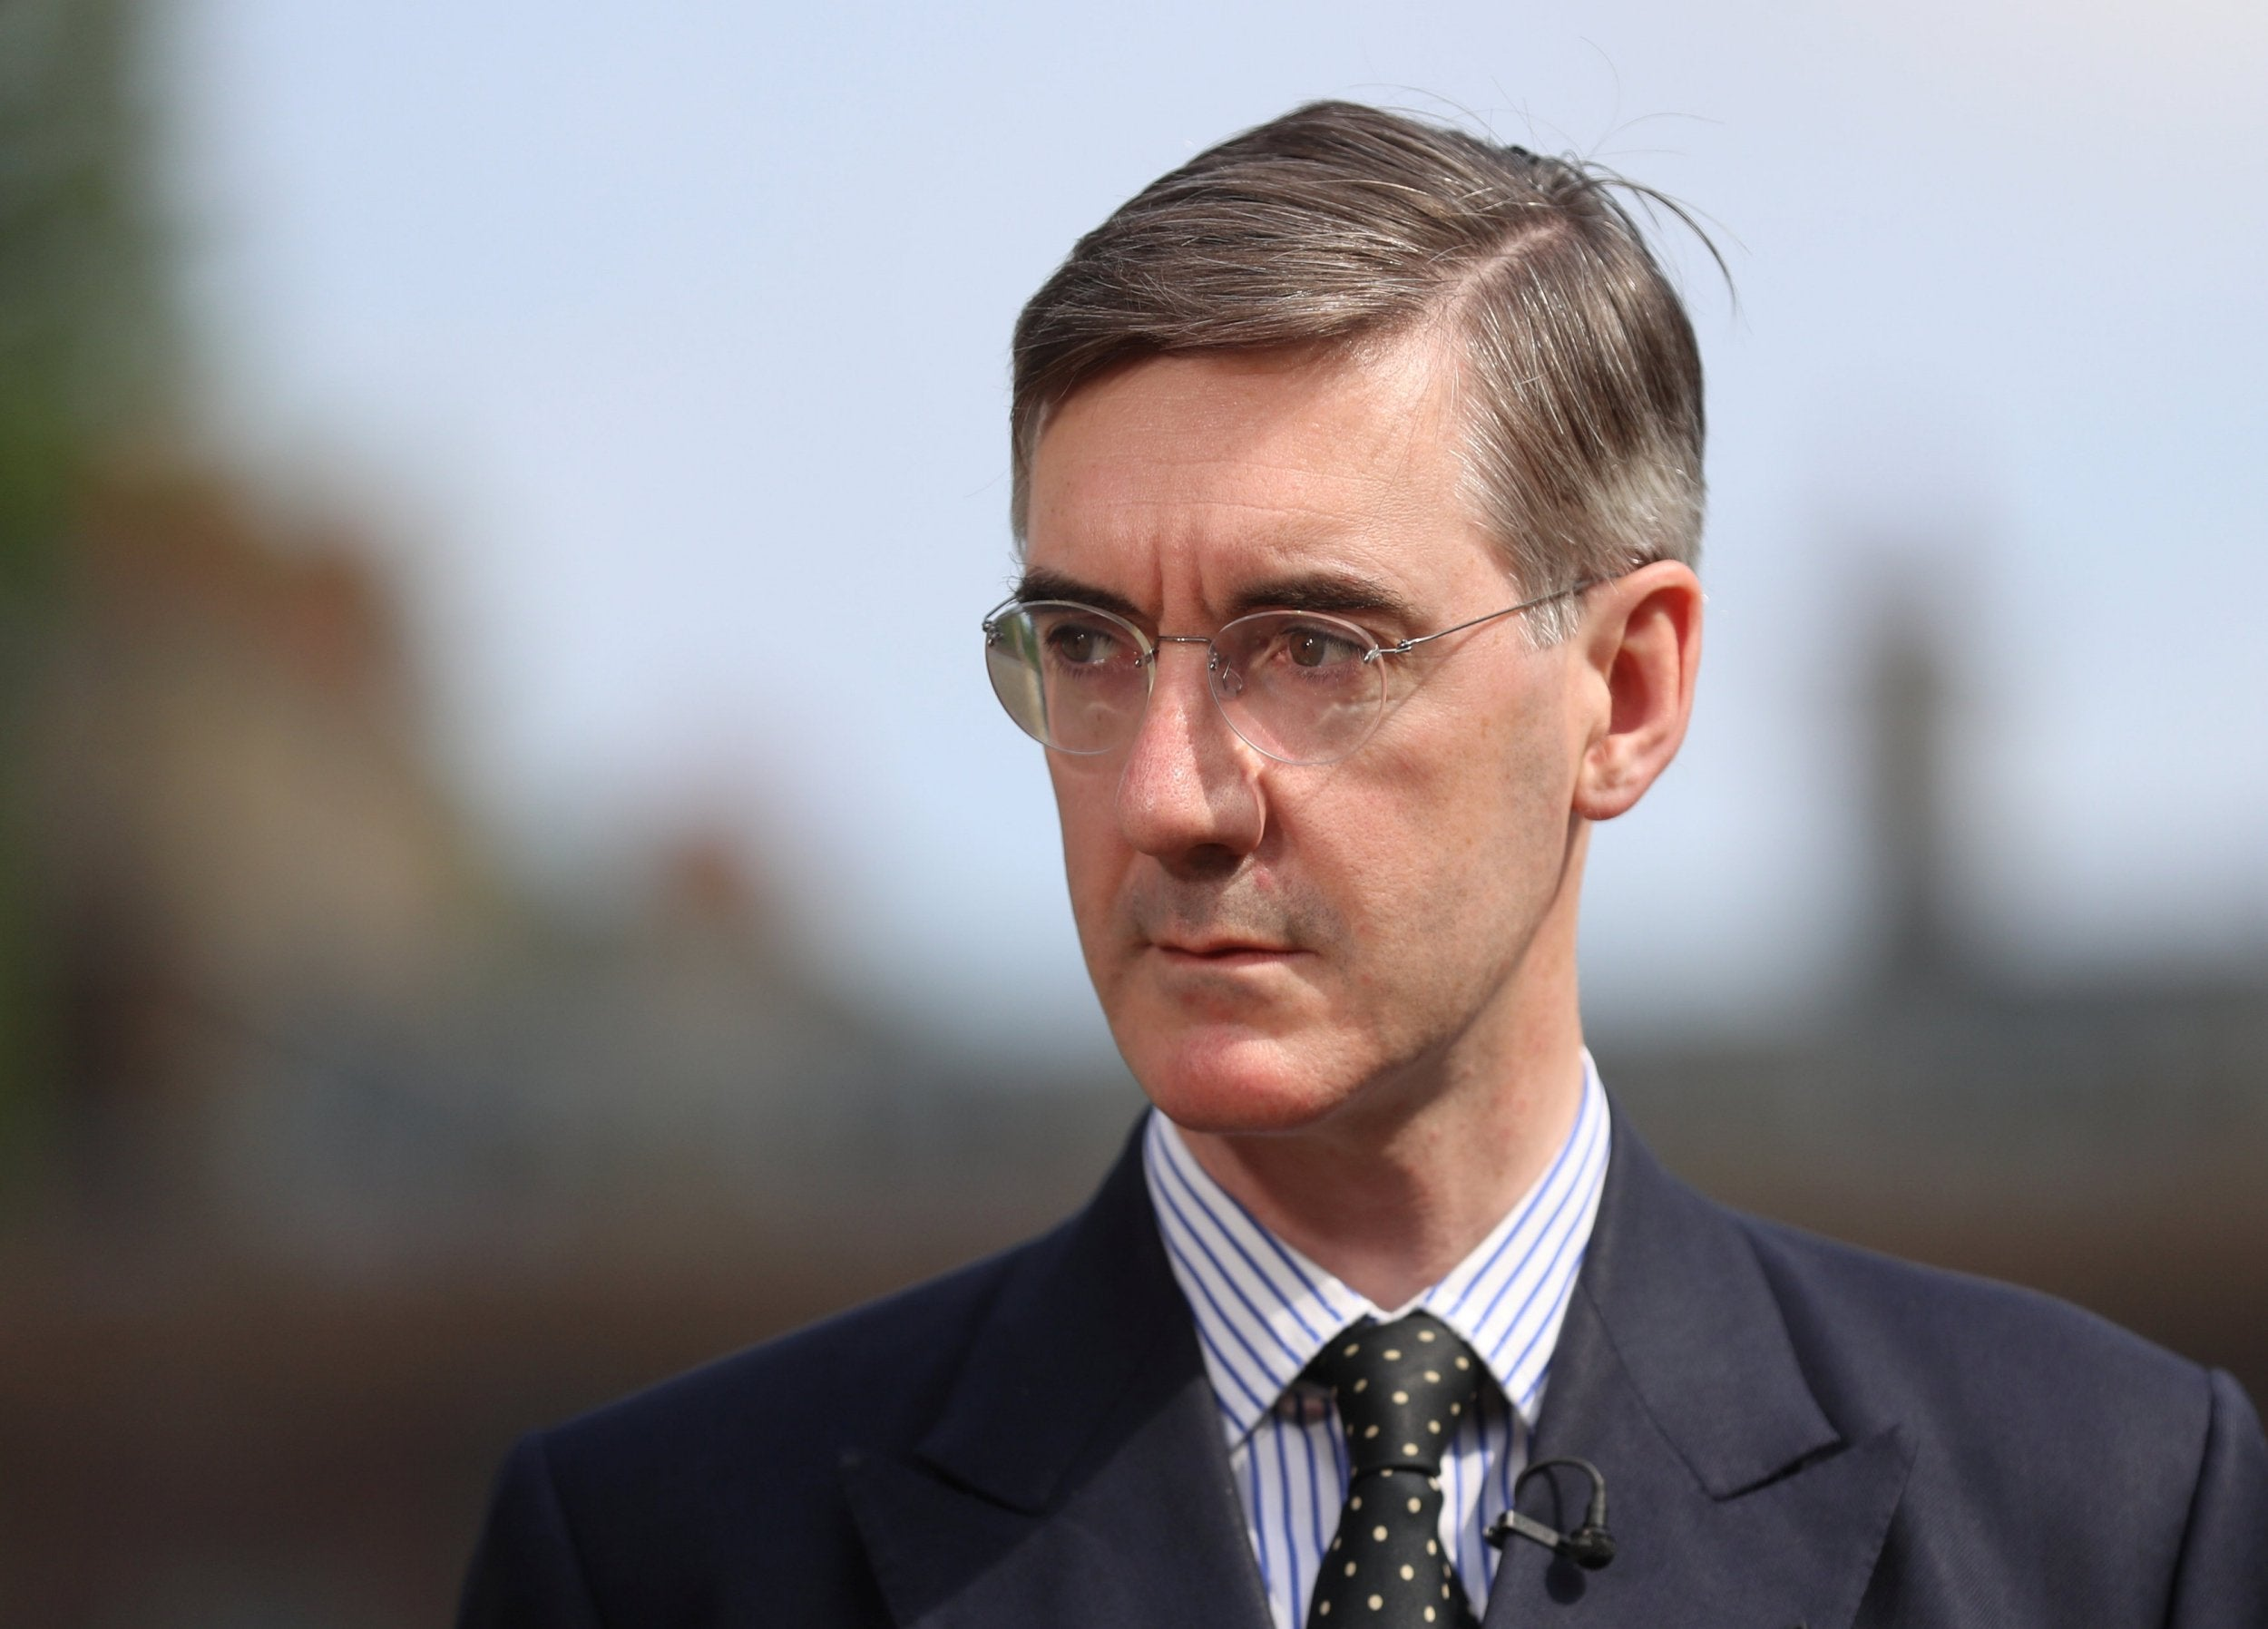 Jacob Rees-Mogg's Economists for Free Trade event had only